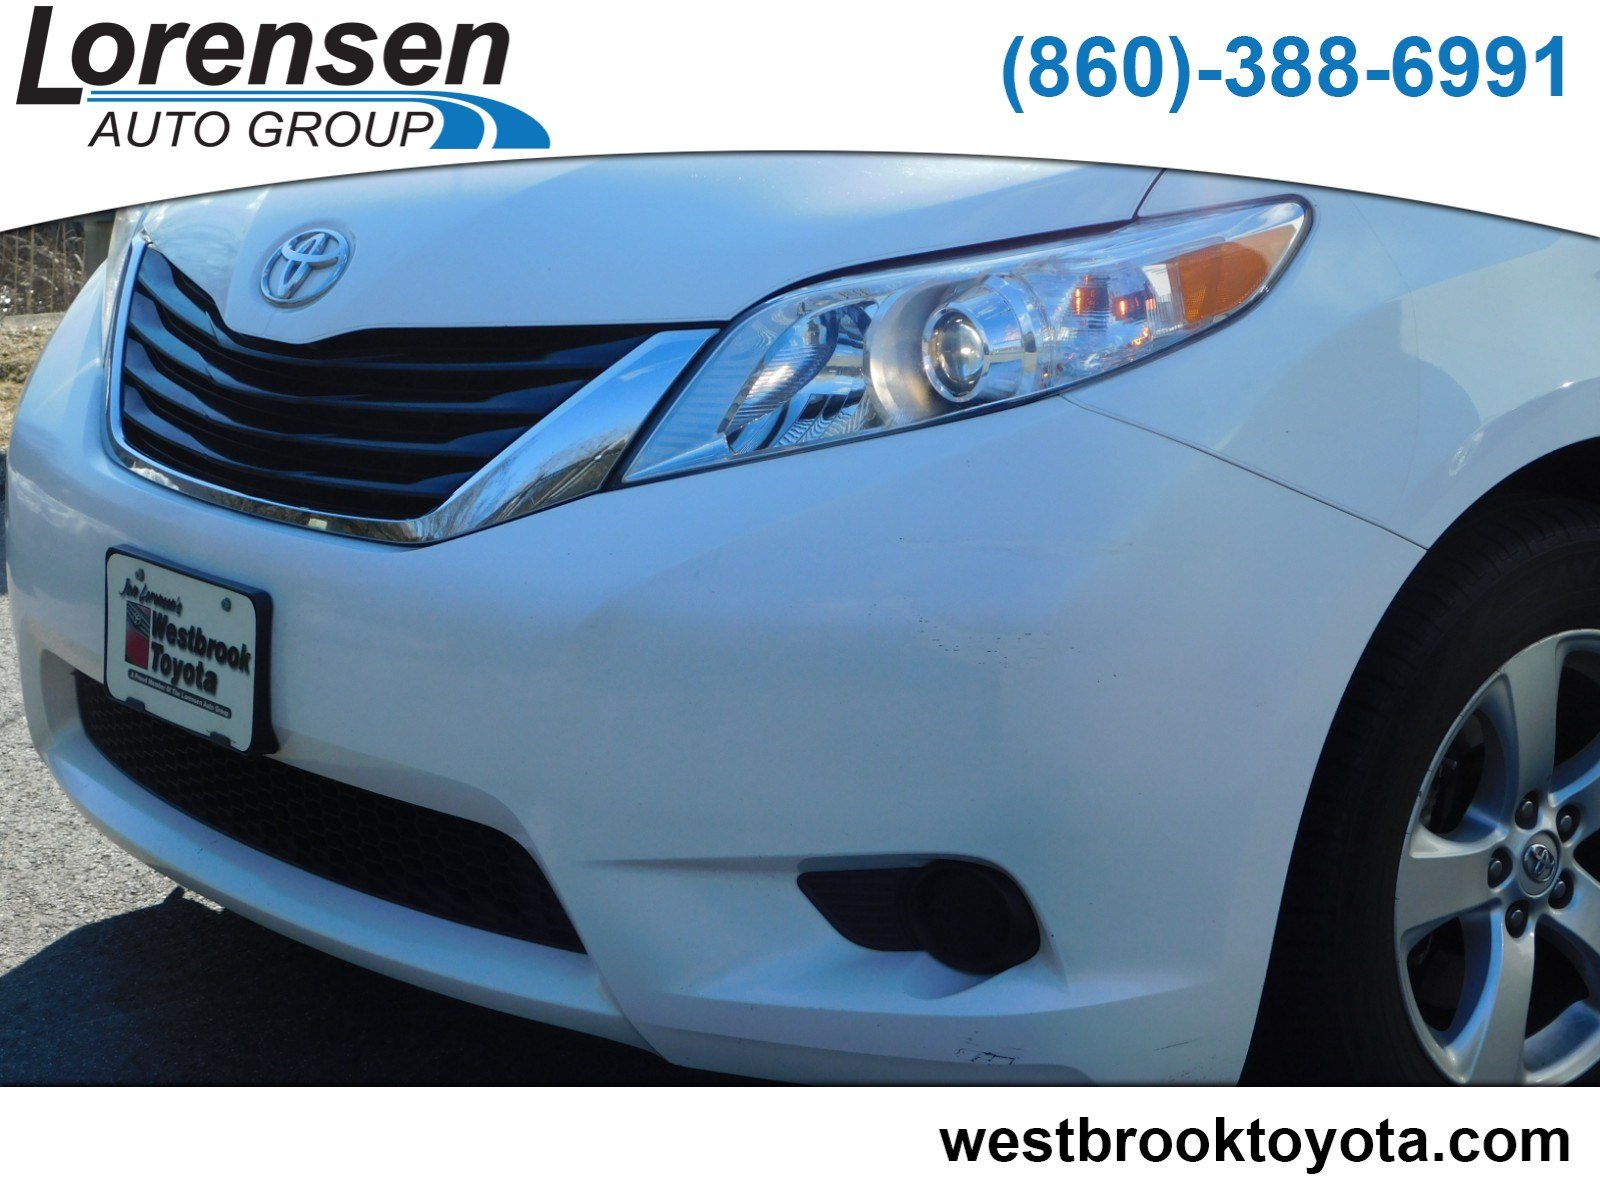 New 2014 Toyota Sienna LE